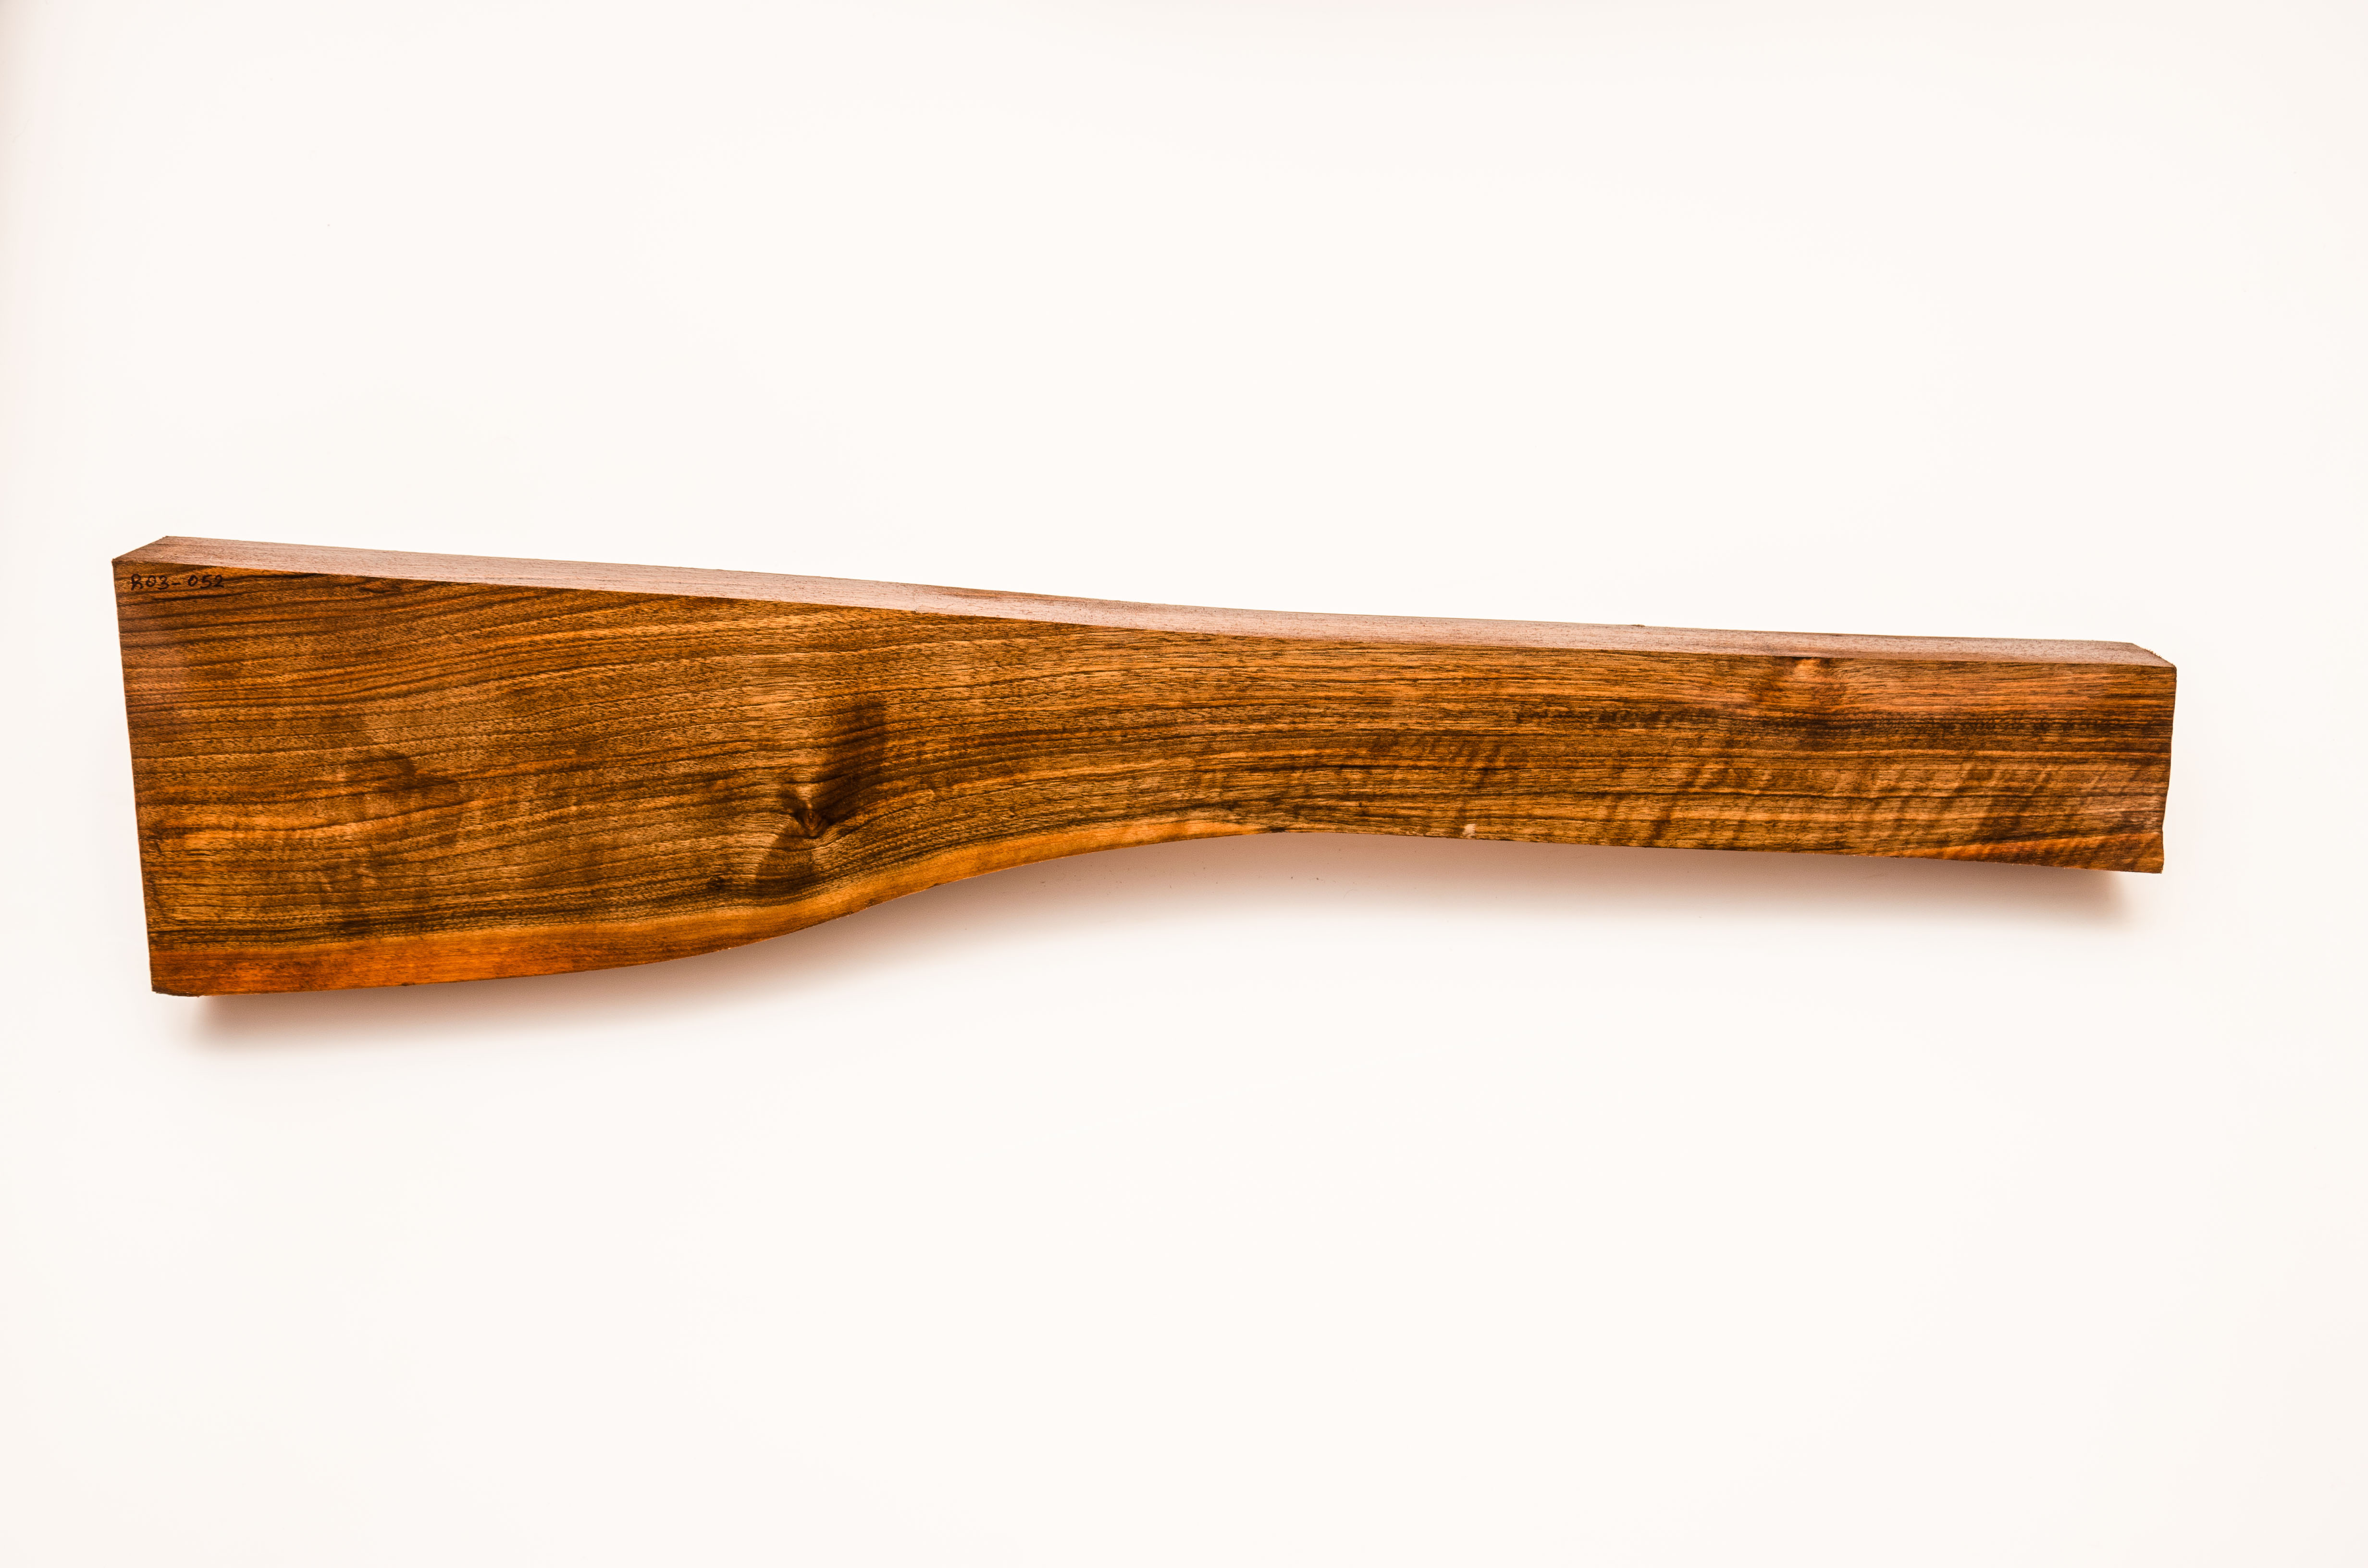 walnut_stock_blanks_for_guns_and_rifles-1413